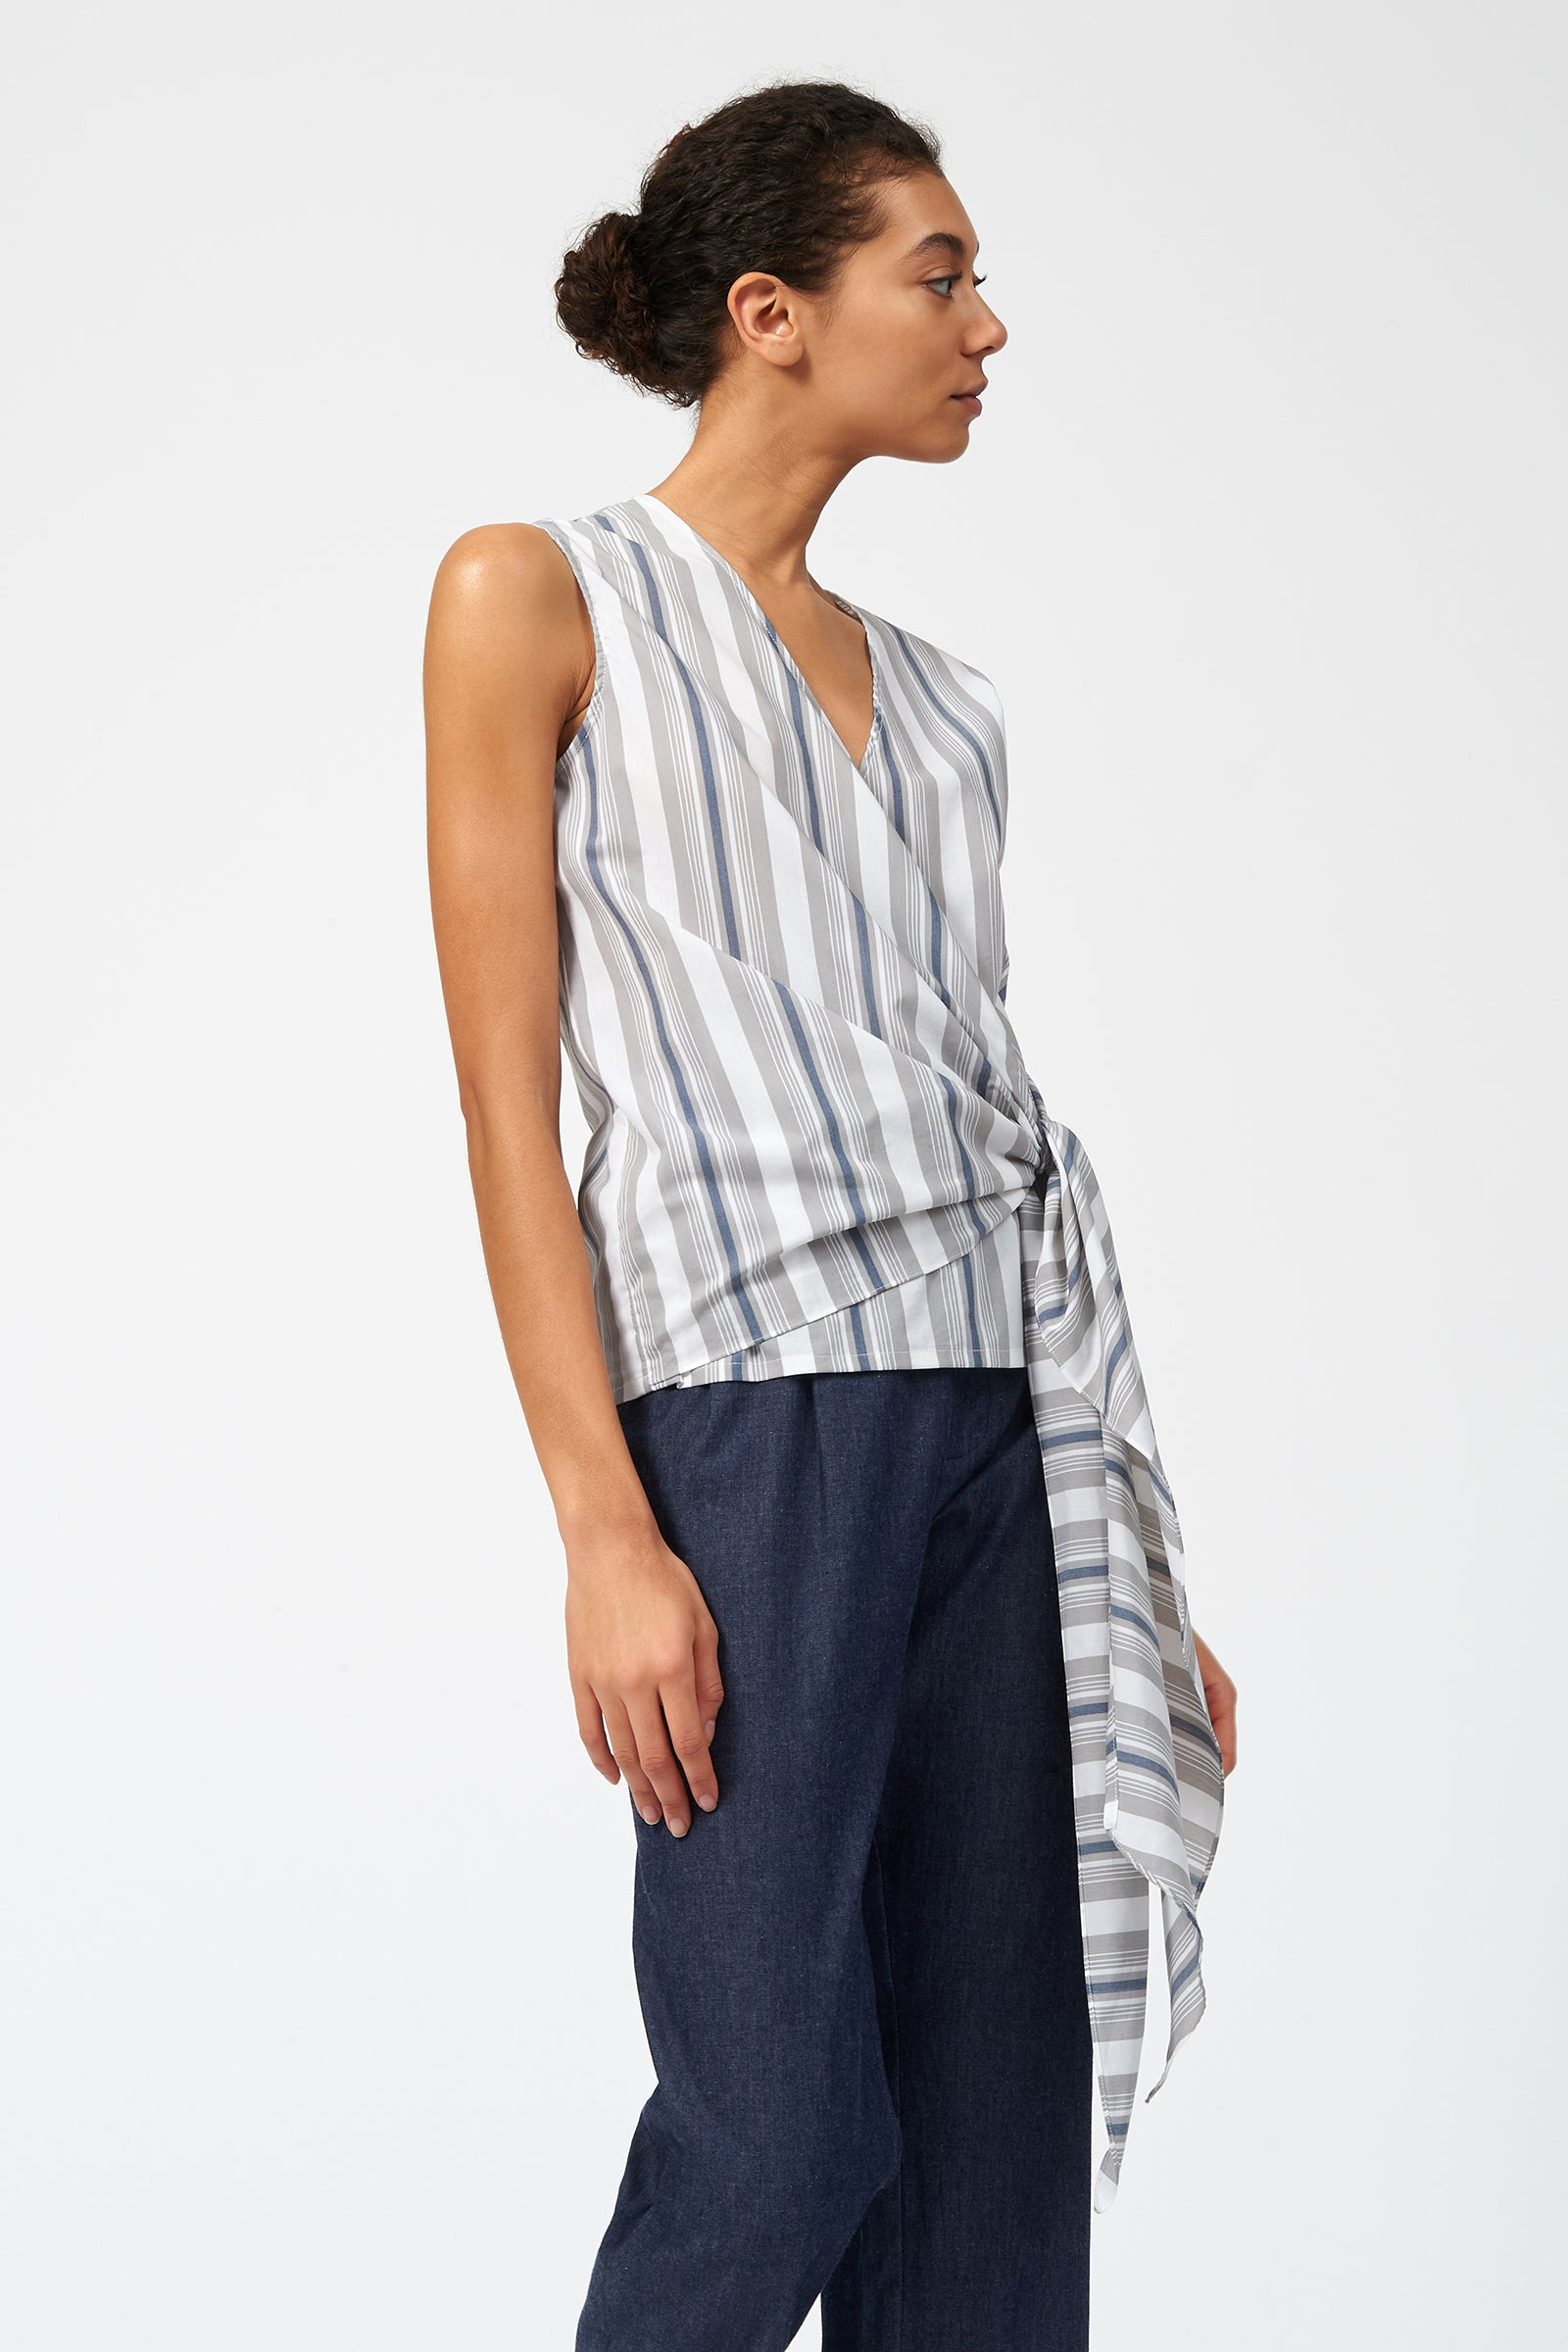 Kal Rieman Tie Hip Shell in Cotton Nylon Stripe on Model Side View